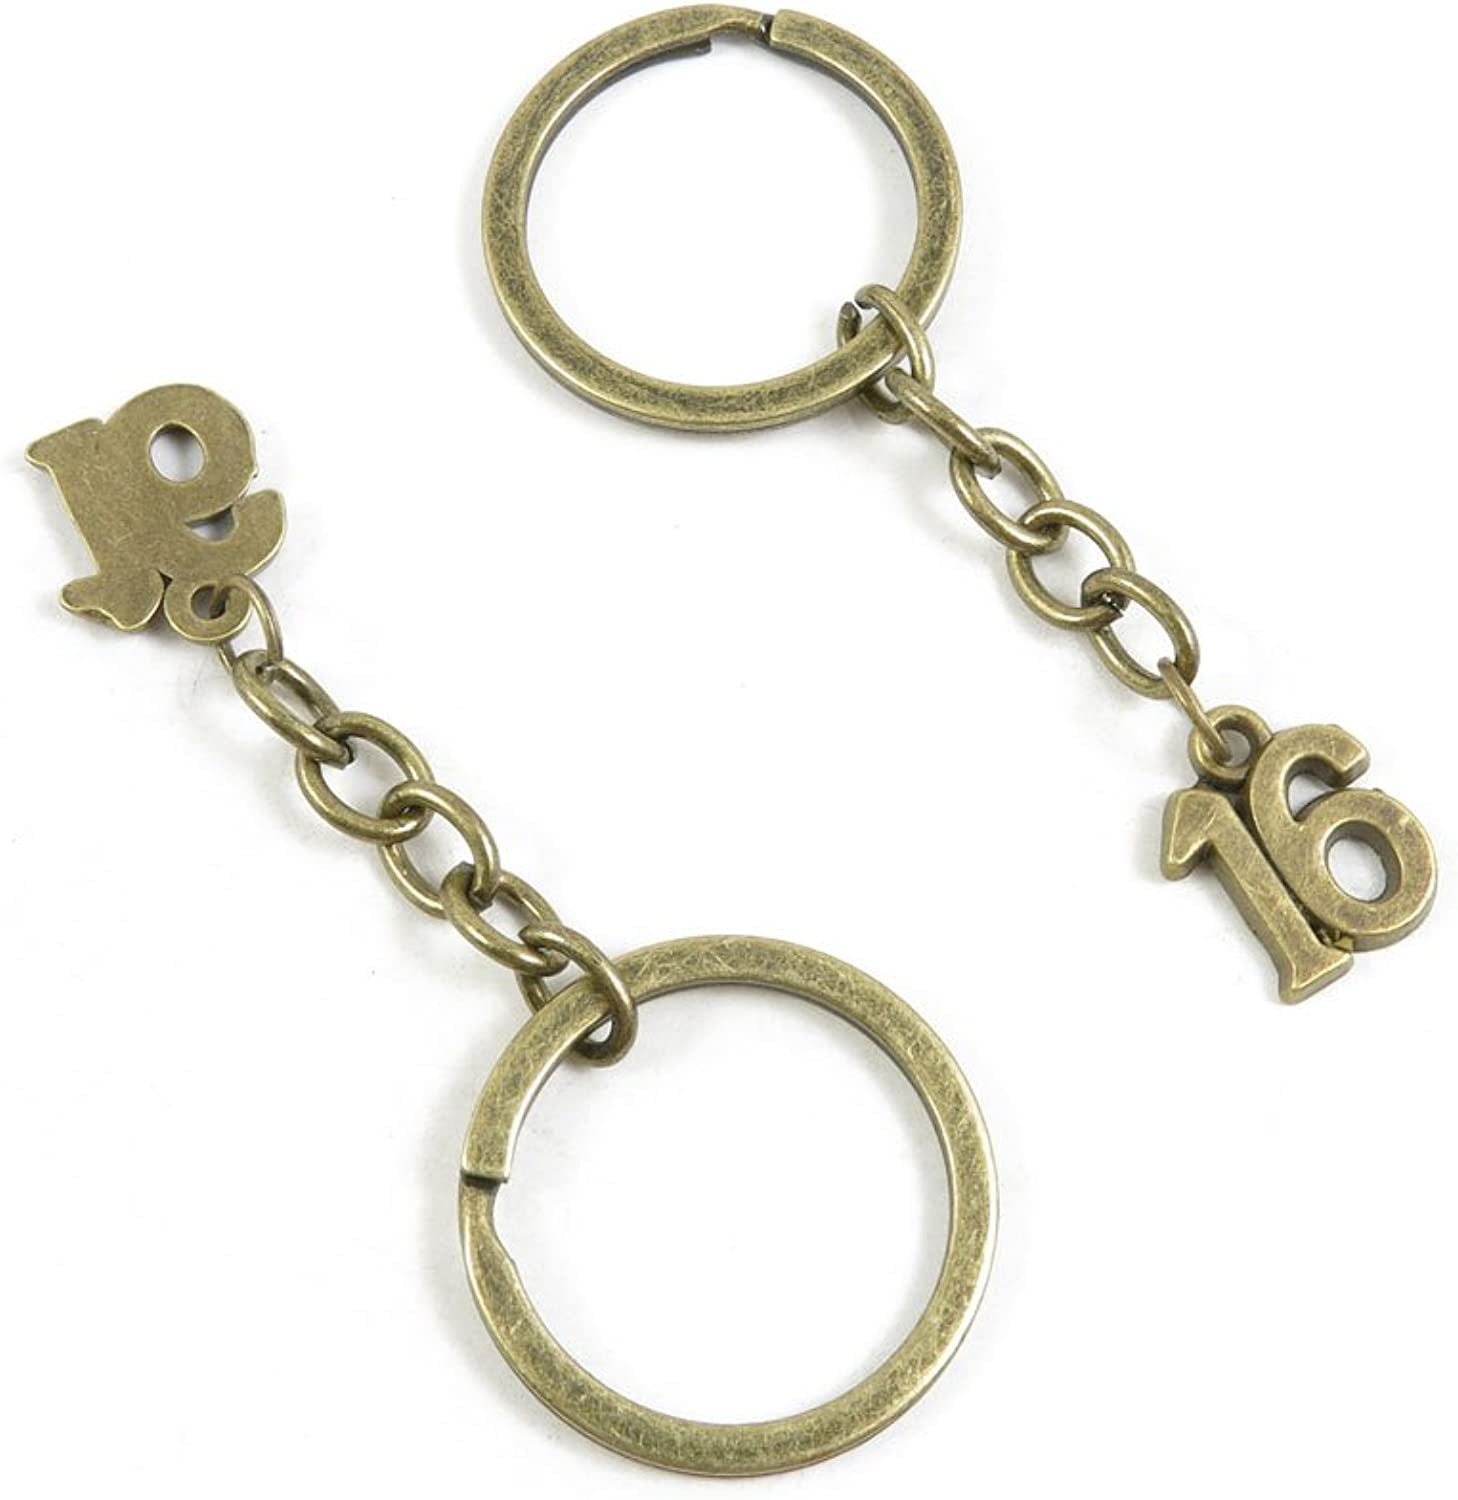 210 Pieces Fashion Jewelry Keyring Keychain Door Car Key Tag Ring Chain Supplier Supply Wholesale Bulk Lots Q9MS4 Number Numeral 16